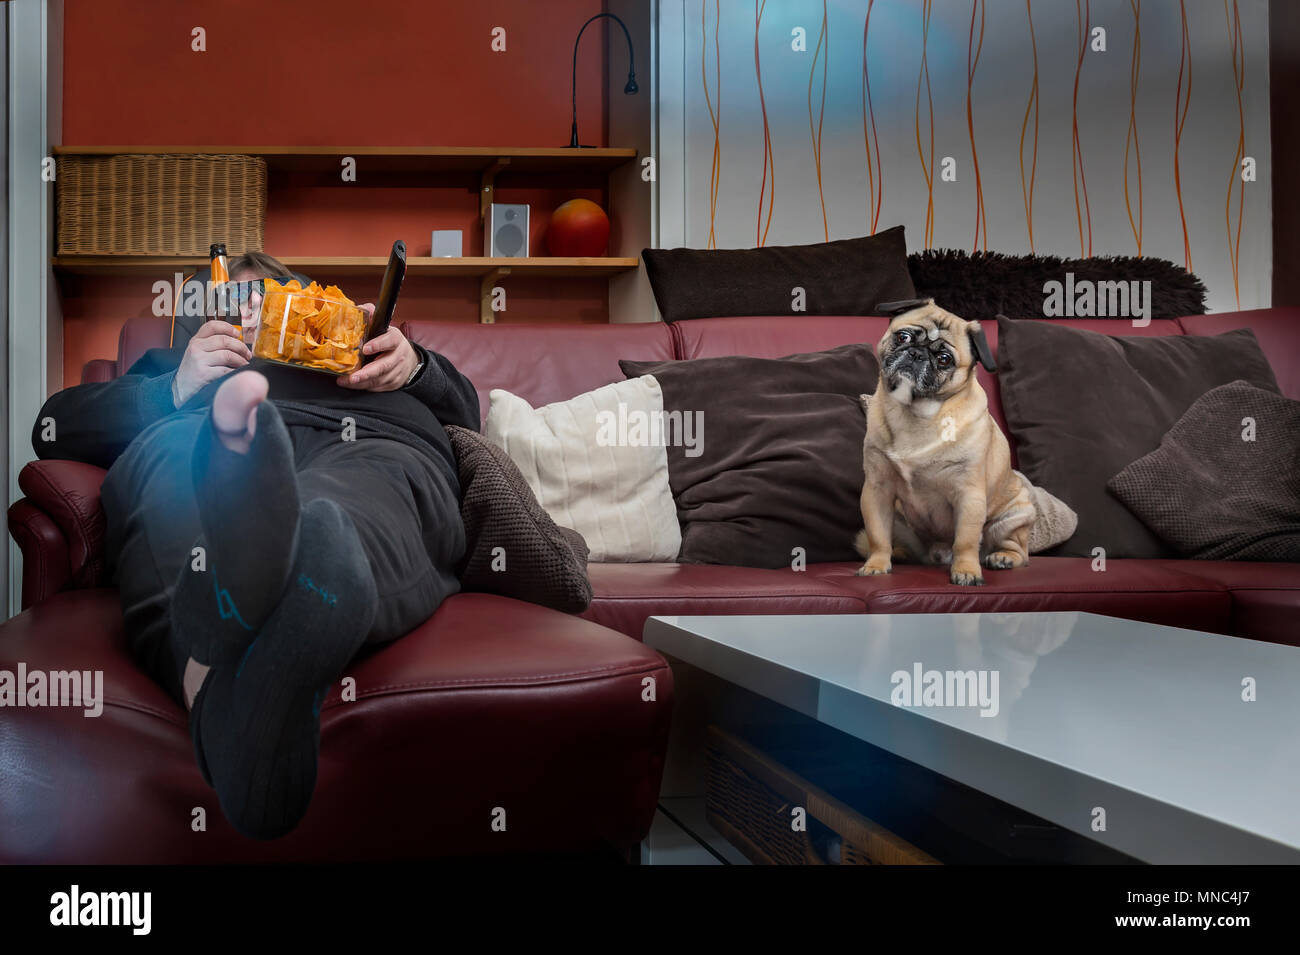 A man eats chips in front of the TV. His dog is sitting next to him on the couch. The man has a hole in the stockings and a 3 D glasses put on. Frog p Stock Photo